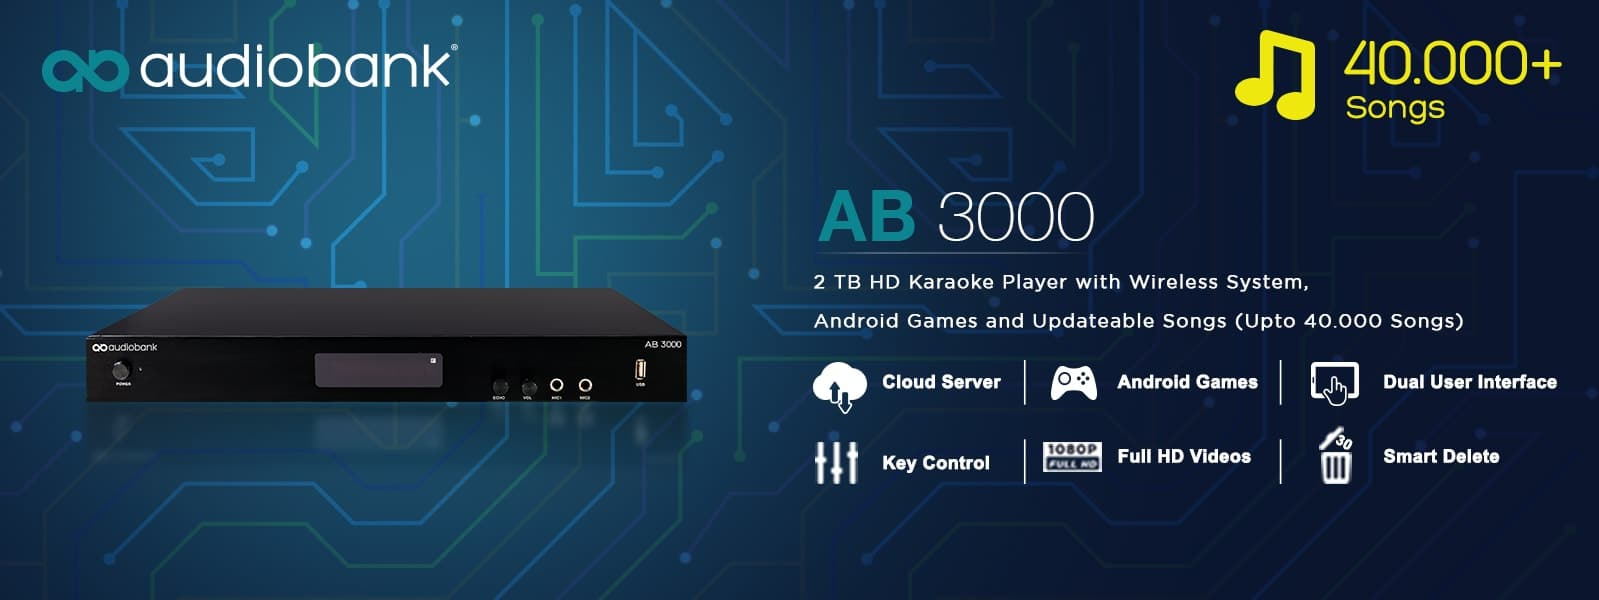 Bless Audio - Audiobank  AB 3000 + Hdd 2 Tb(39.000 lagu)Full Hd 1080 P - Blanja.com